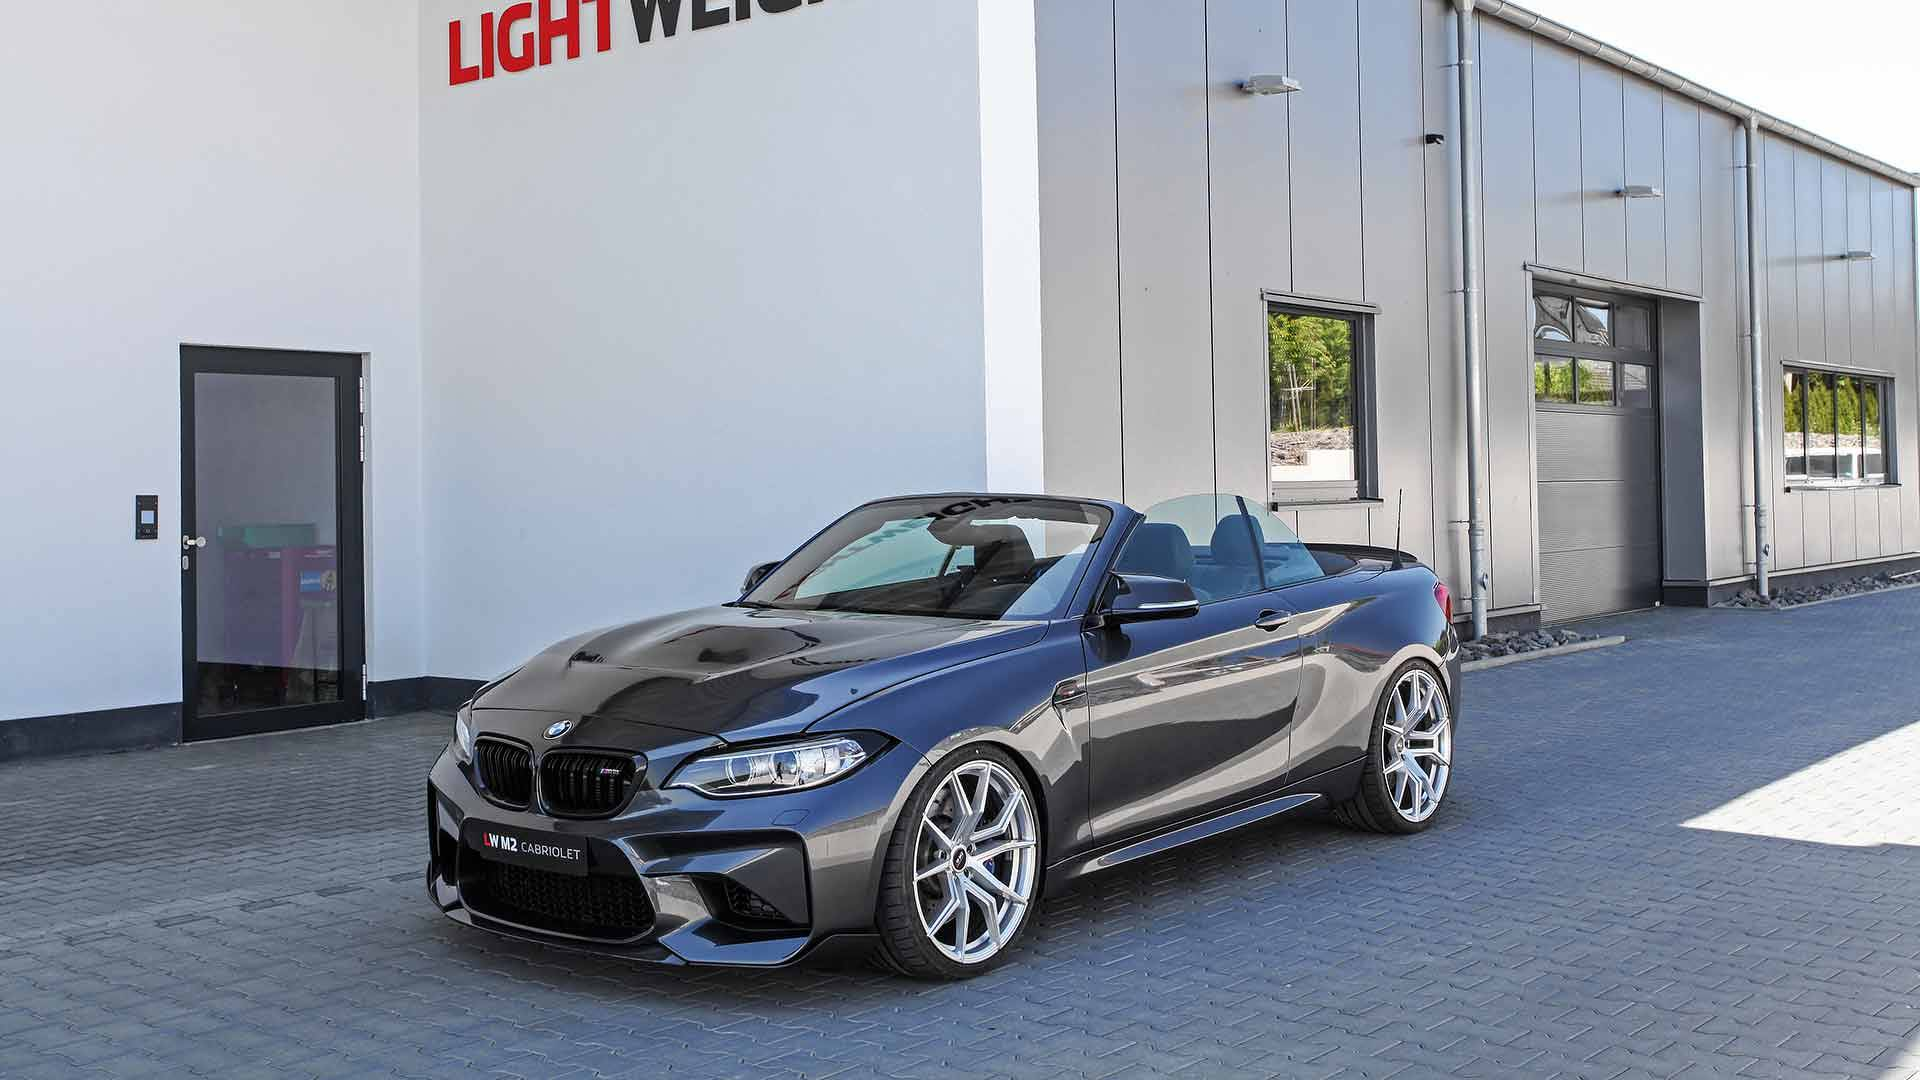 BMW_M2_Convertible_Lightweight_0003